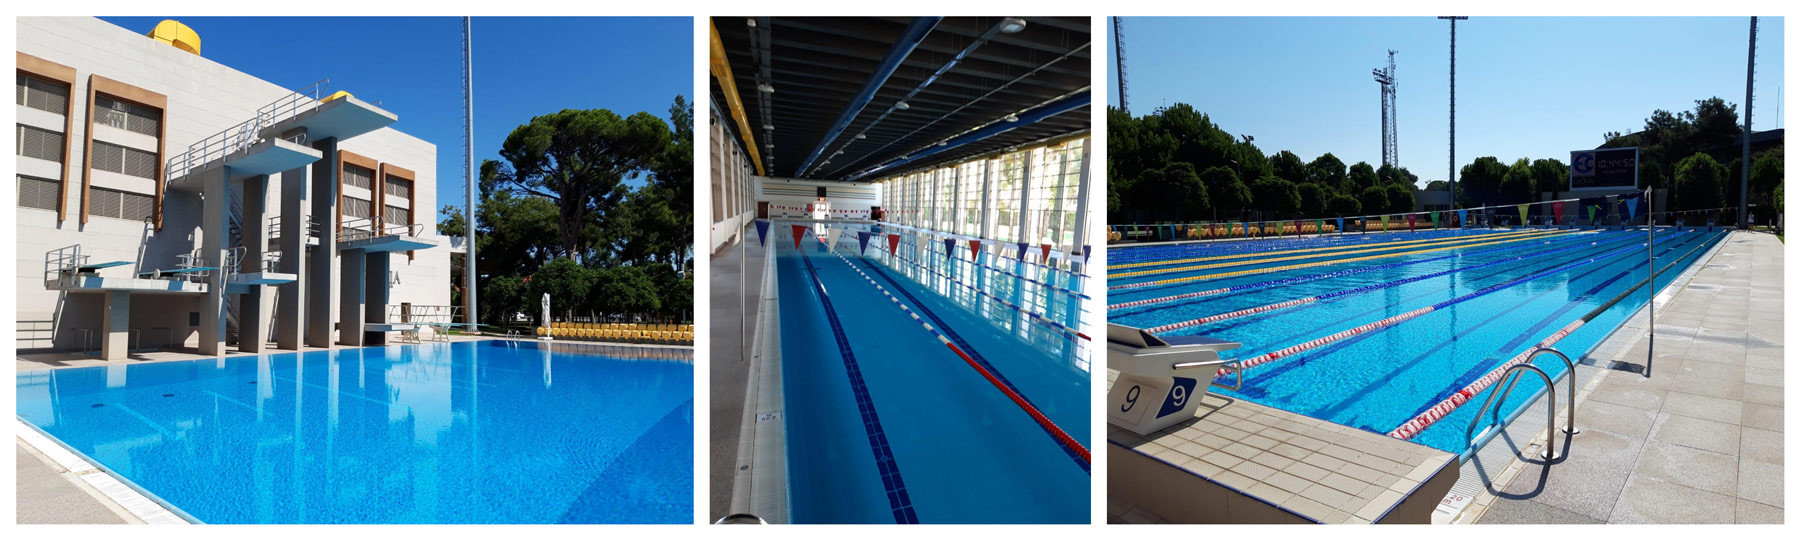 Aquatics is on the agenda for Gloria Sports Arena as they consider expanding the Gloria Cup to other sports ©GSA